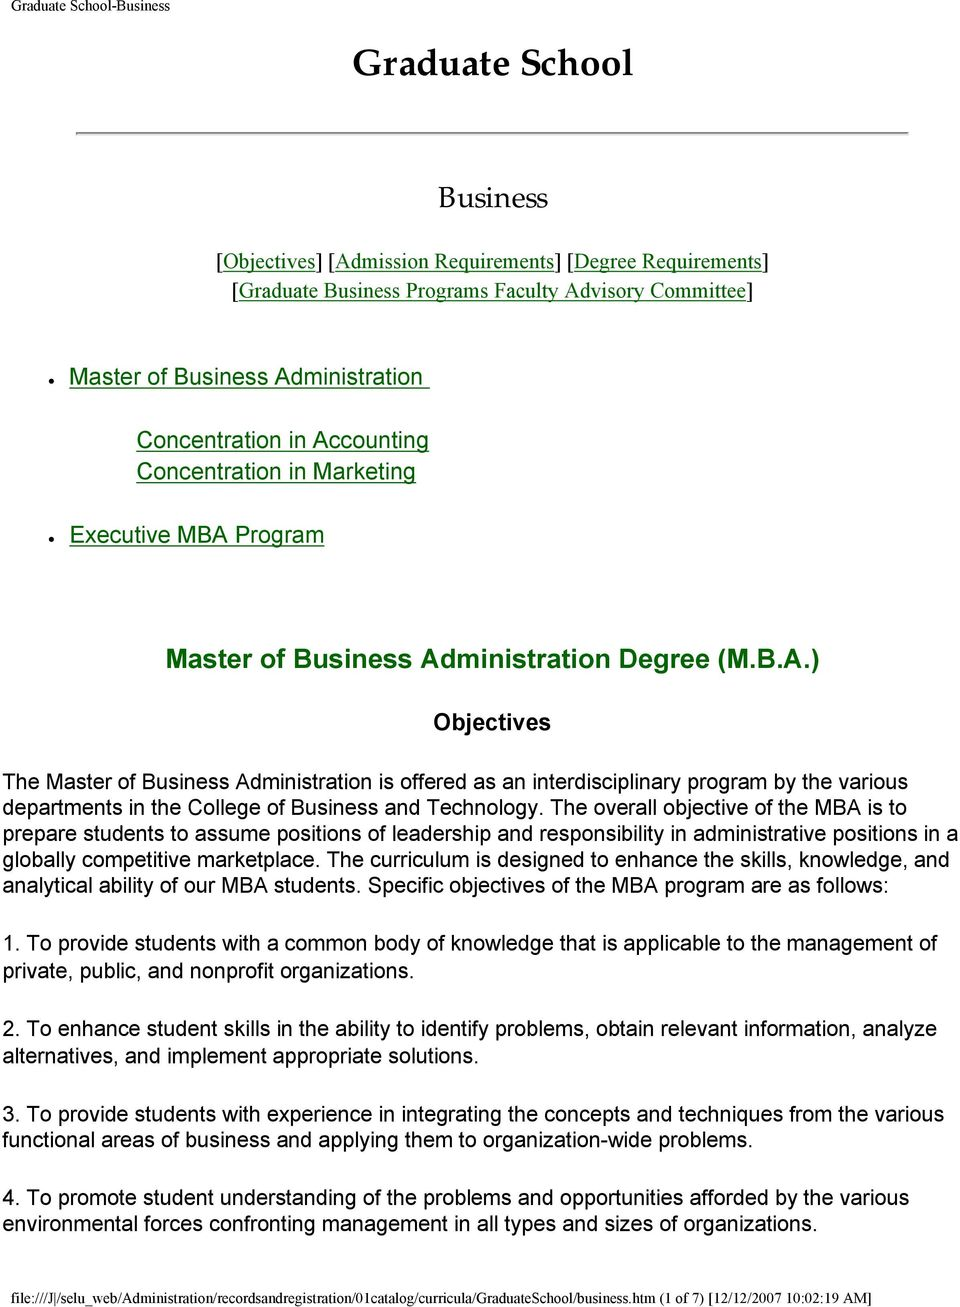 The overall objective of the MBA is to prepare students to assume positions of leadership and responsibility in administrative positions in a globally competitive marketplace.